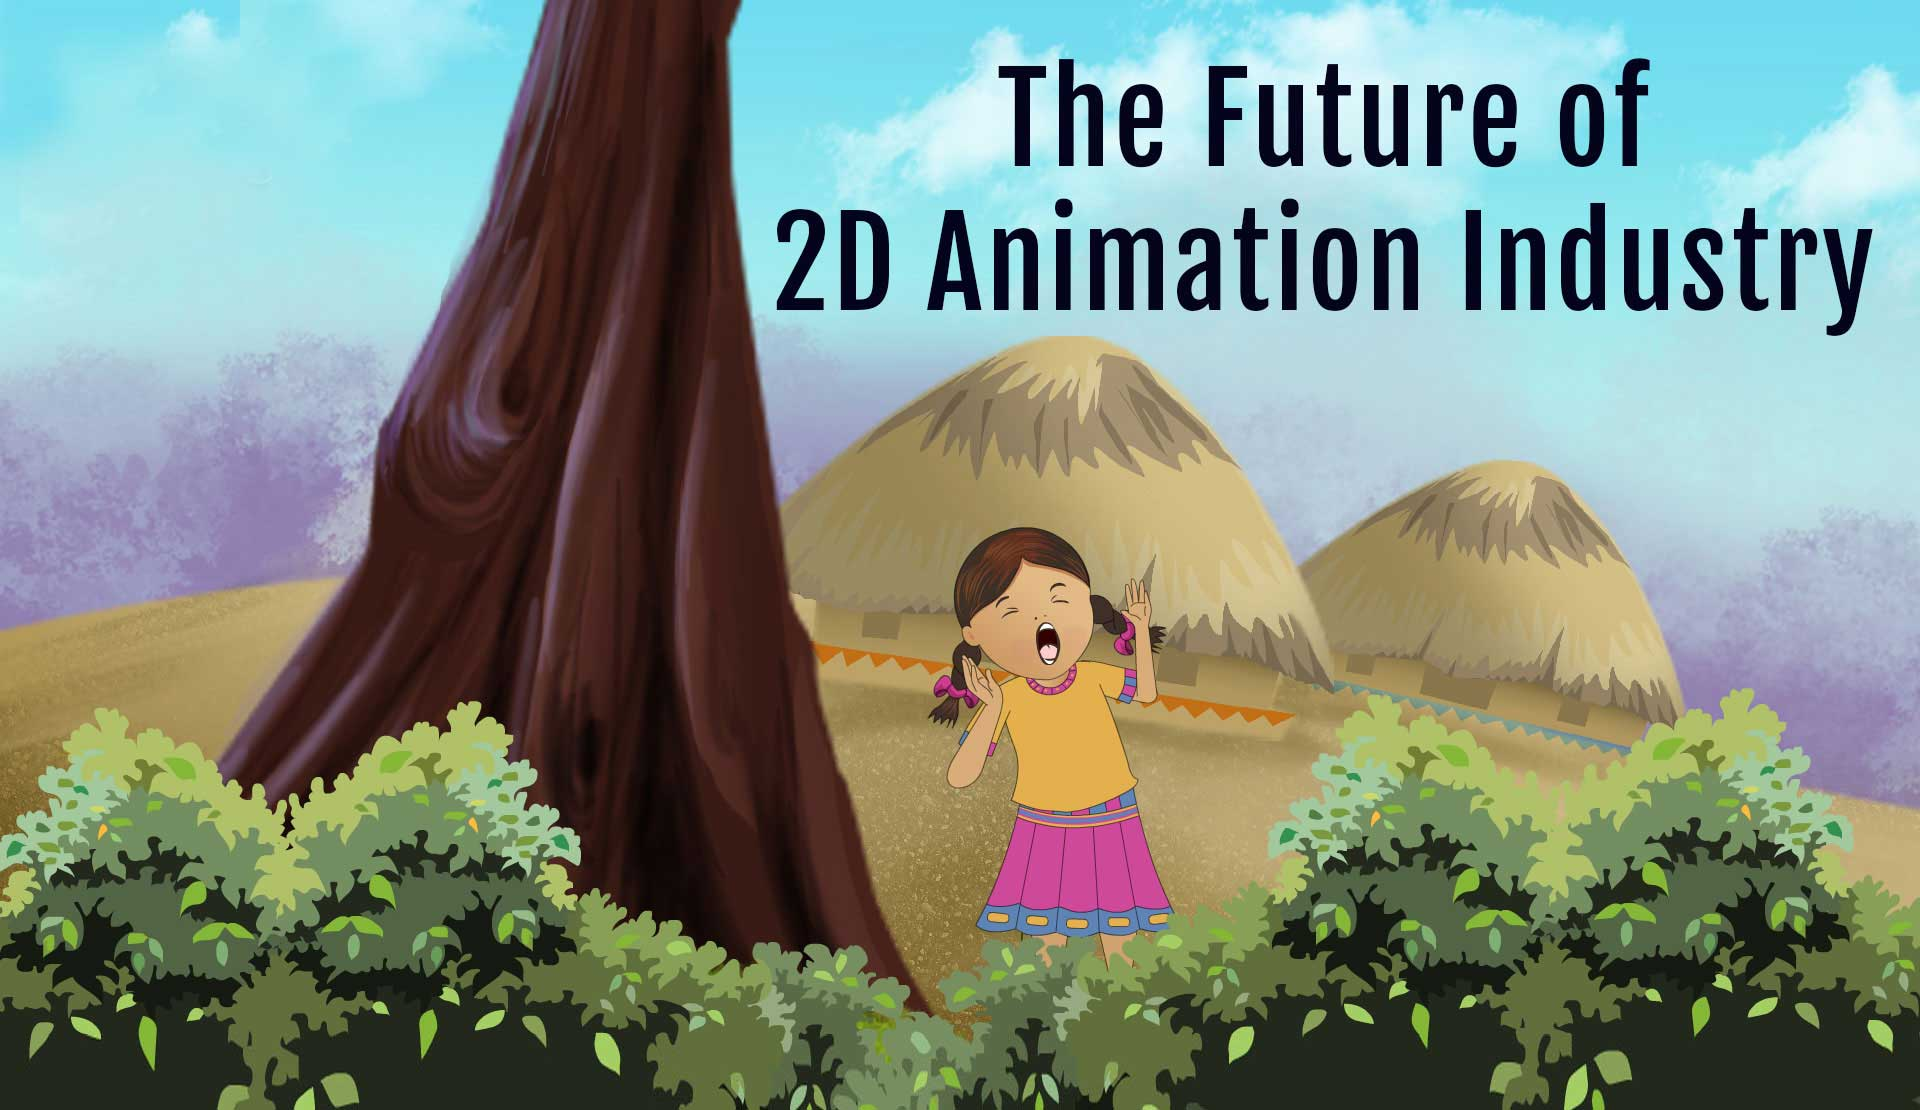 The Future of 2D Animation Industry